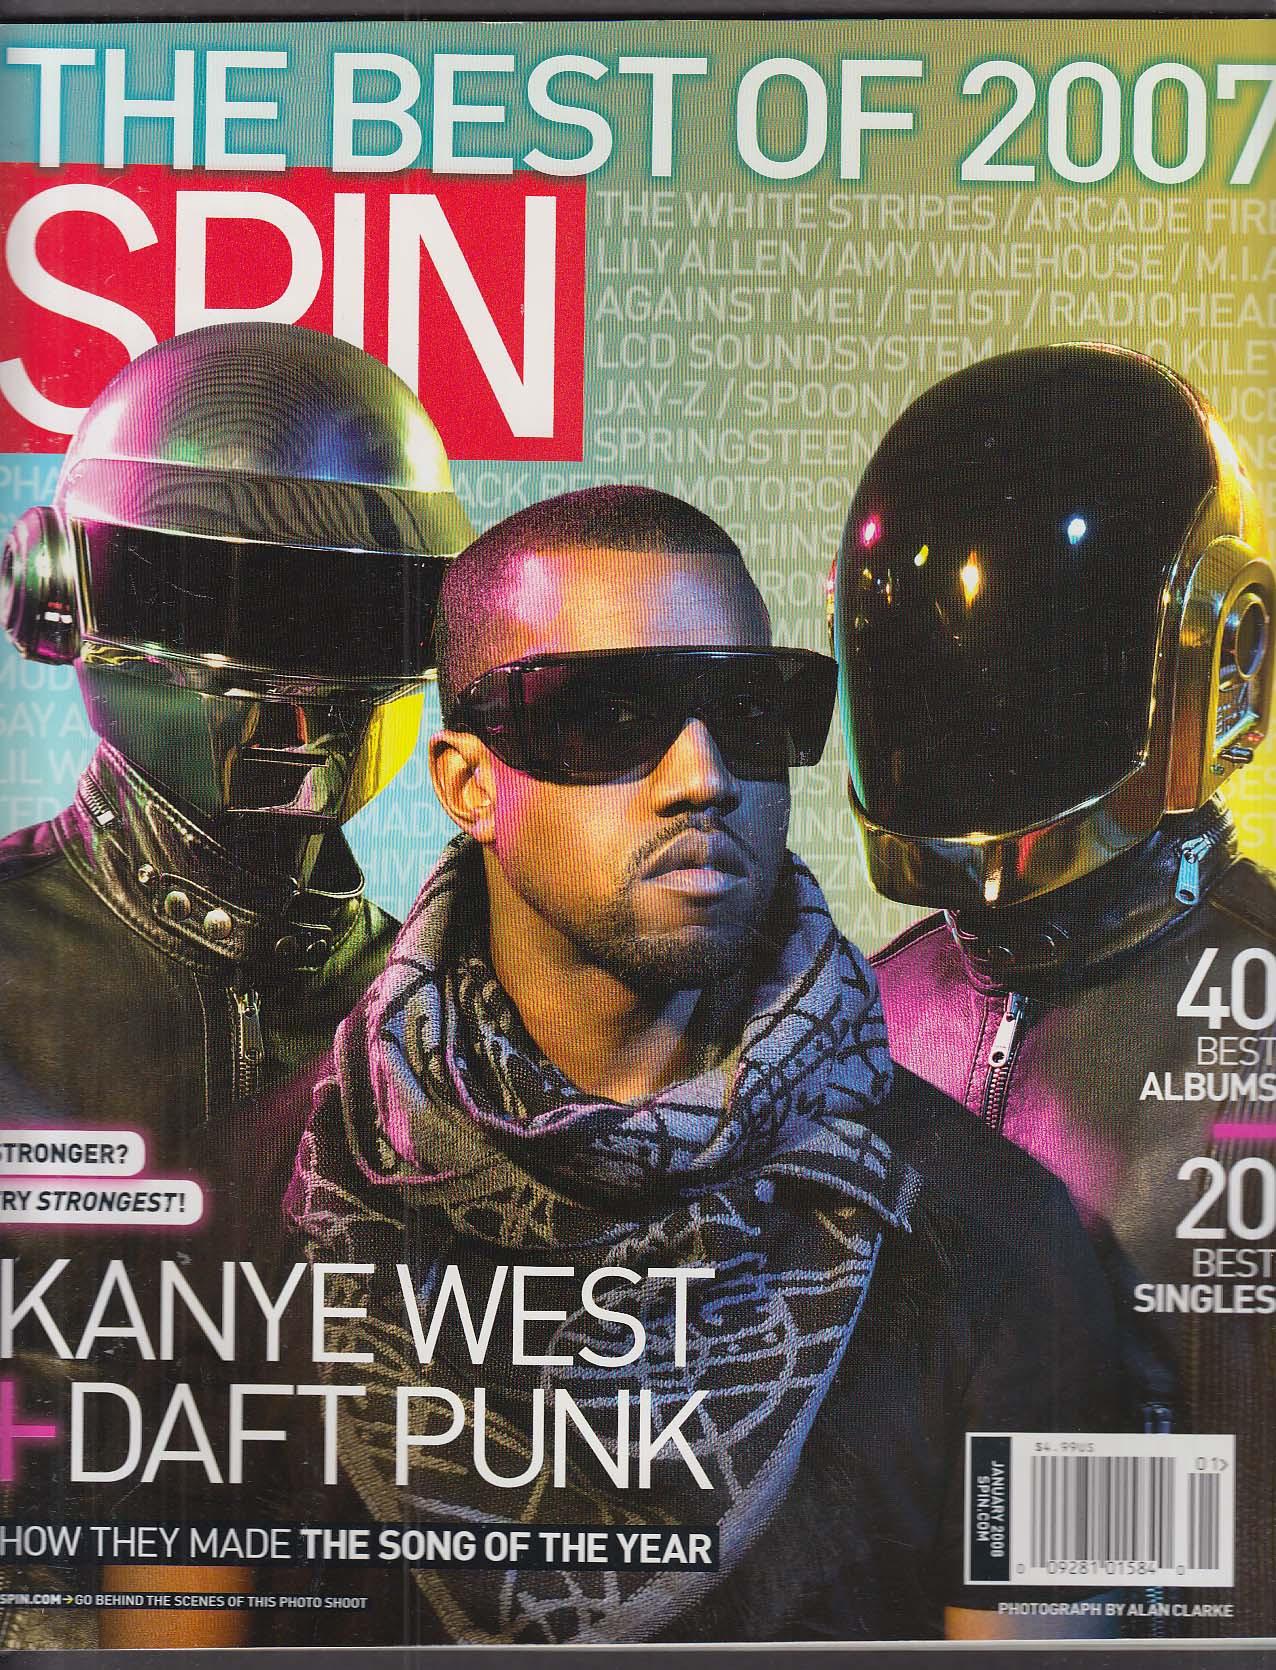 SPIN Kanye West Daft Punk White Stripes Arcade Fire Amy Winehouse + 1 2008